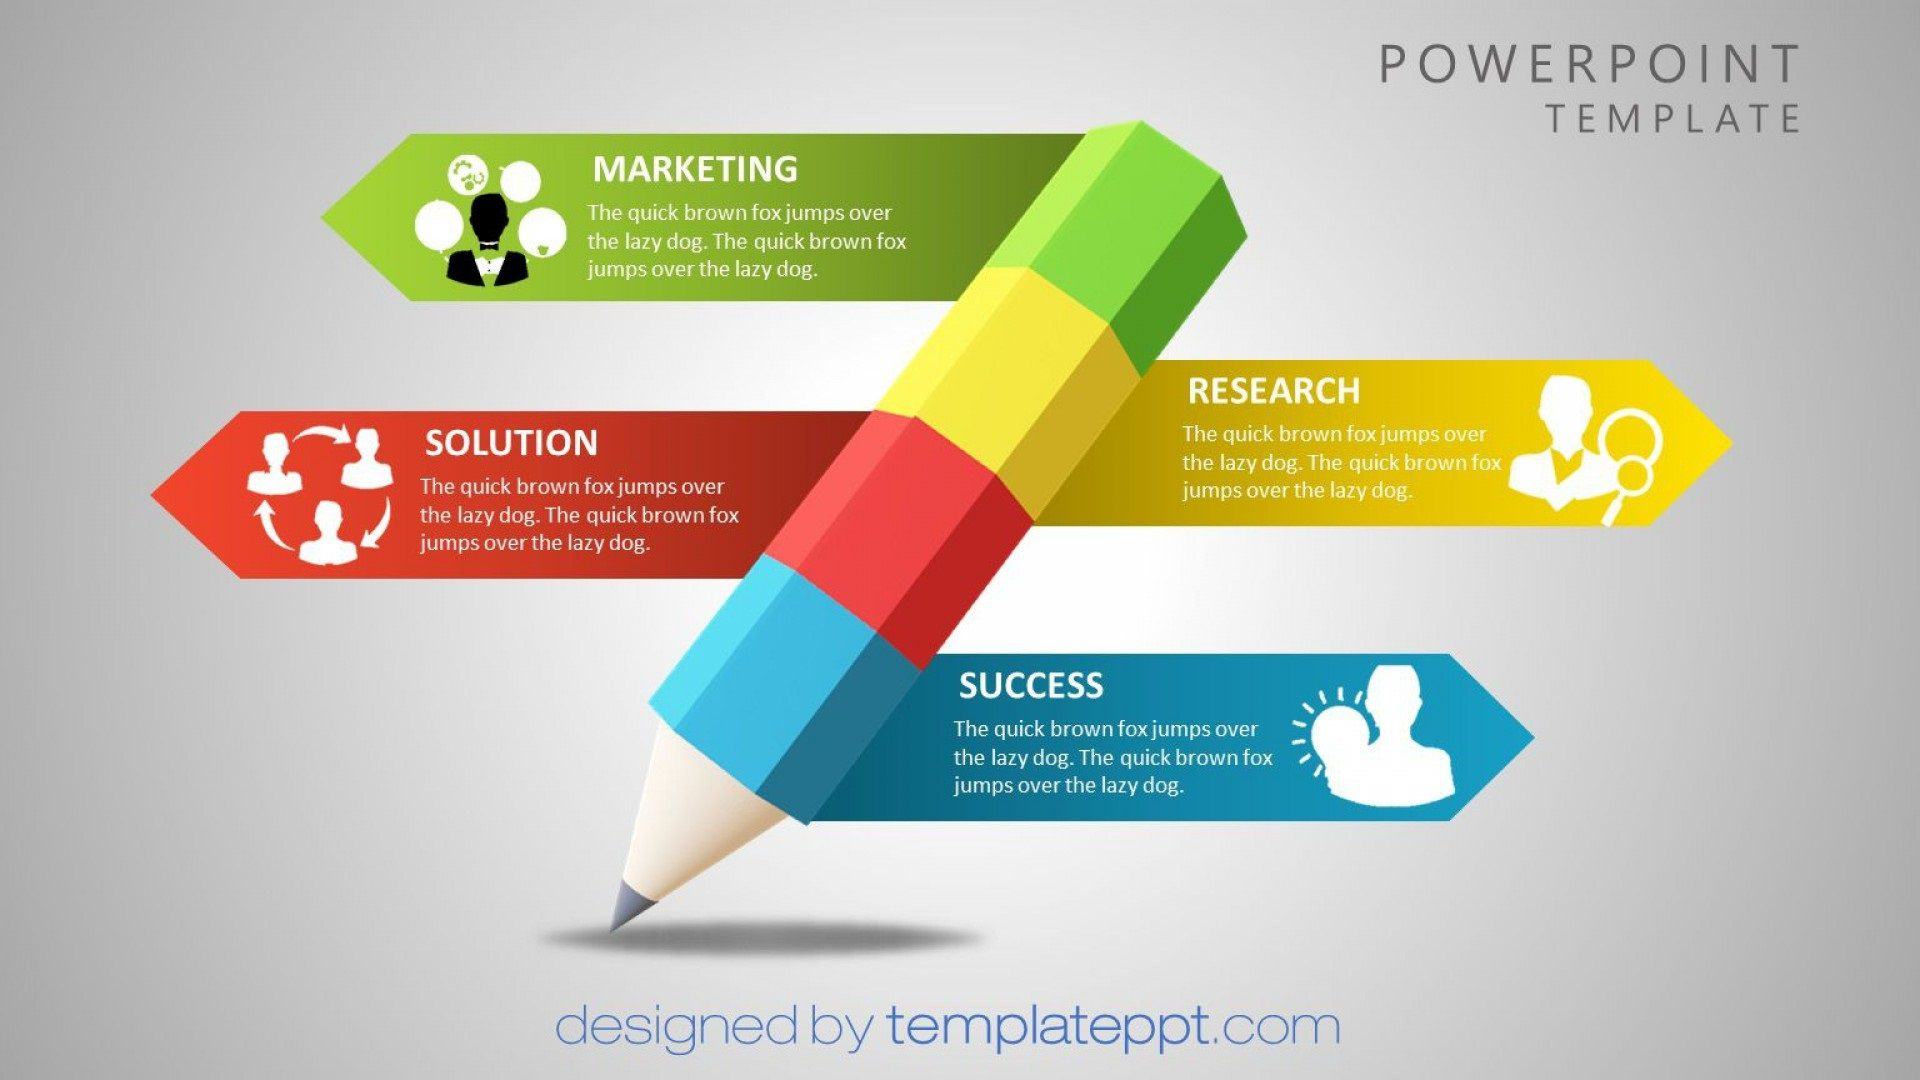 003 Remarkable 3d Animated Powerpoint Template Free Download 2010 Example Full